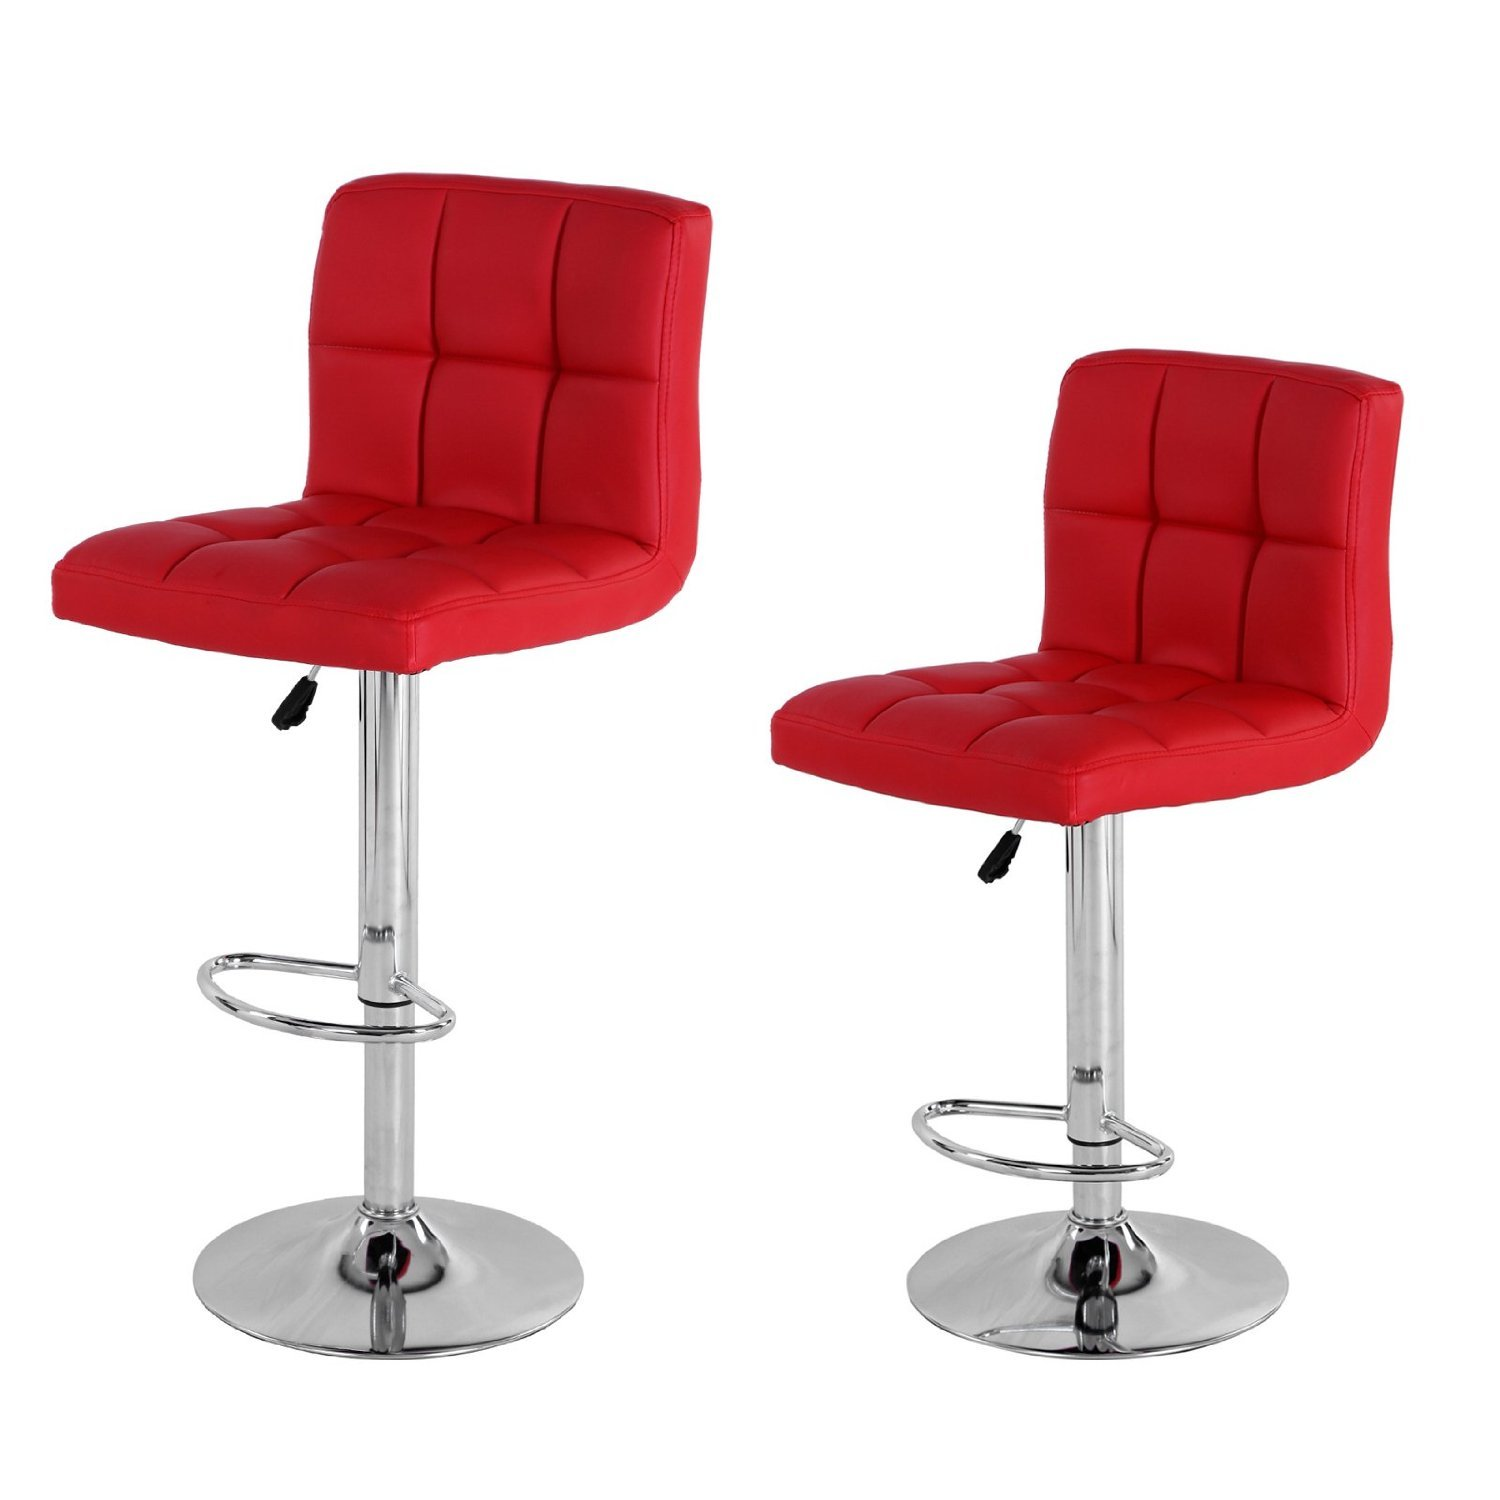 Luxurious Chair Red Stools Bar Commercial Swivel Elegant